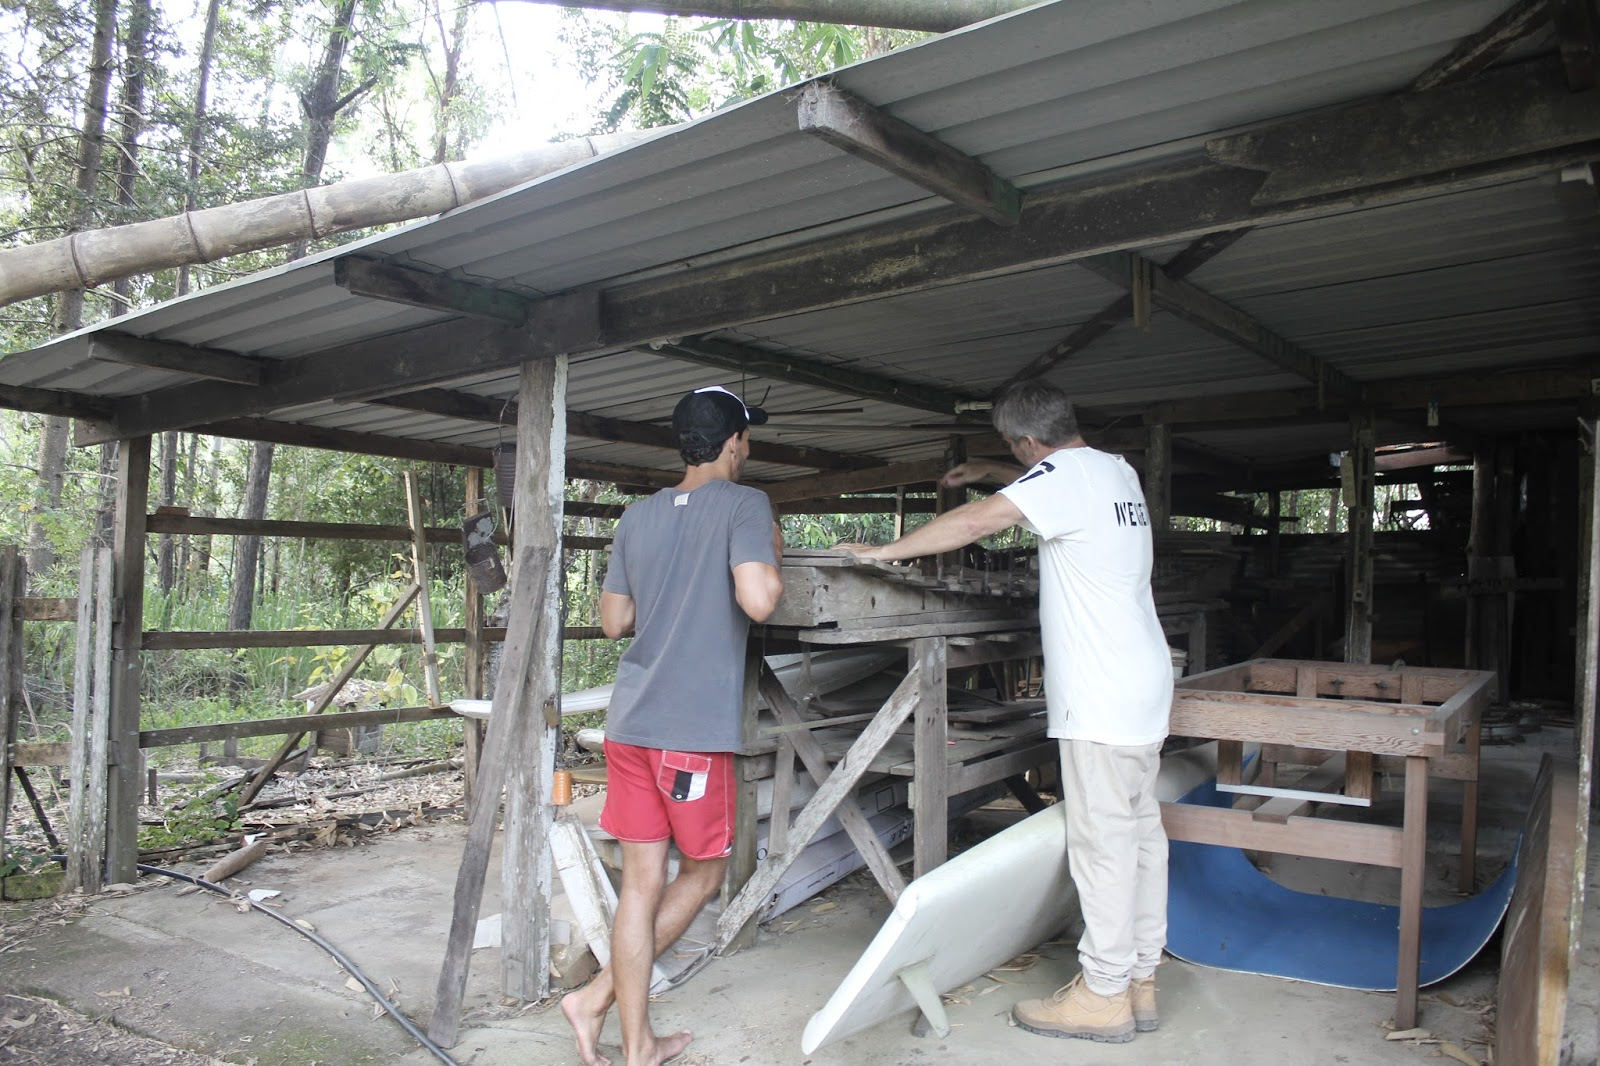 16-03-2016-australia-siebert-surfboards-04